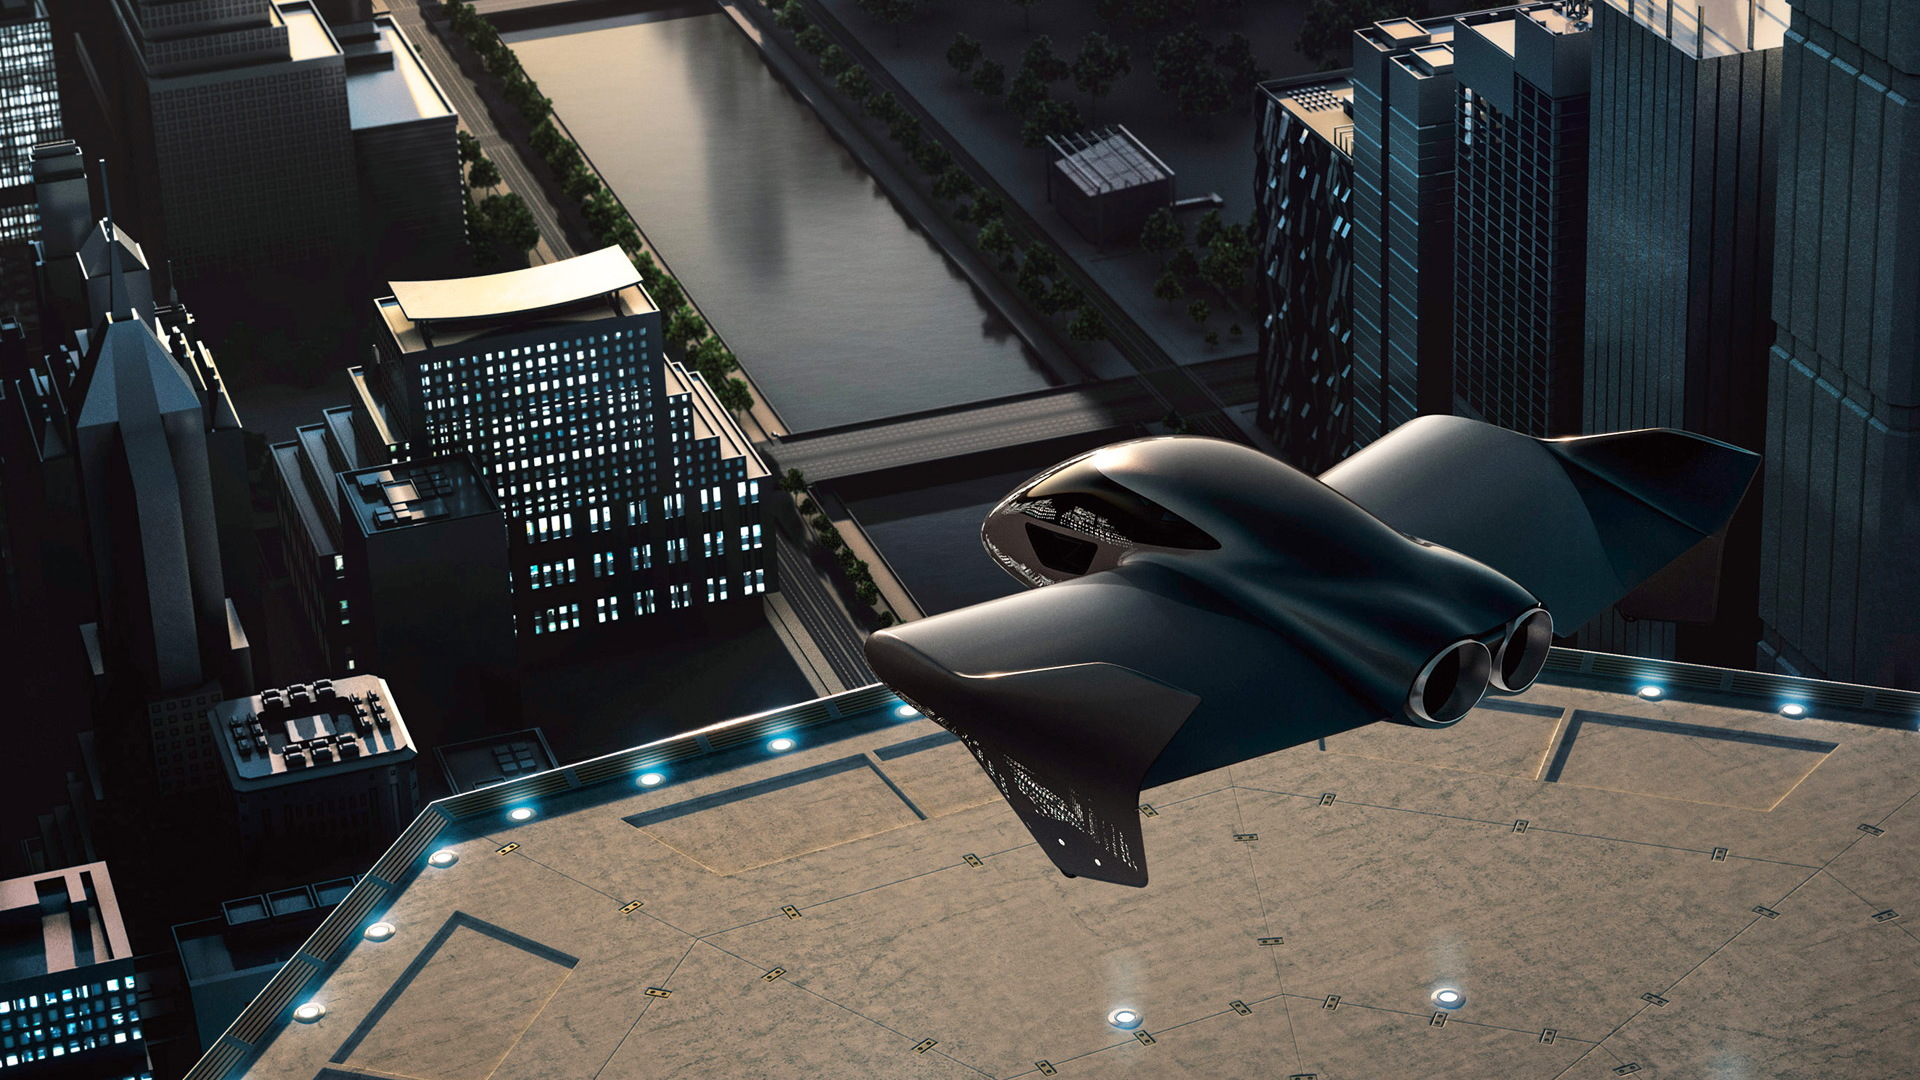 Artist's impression of Porsche and Boeing flying taxi